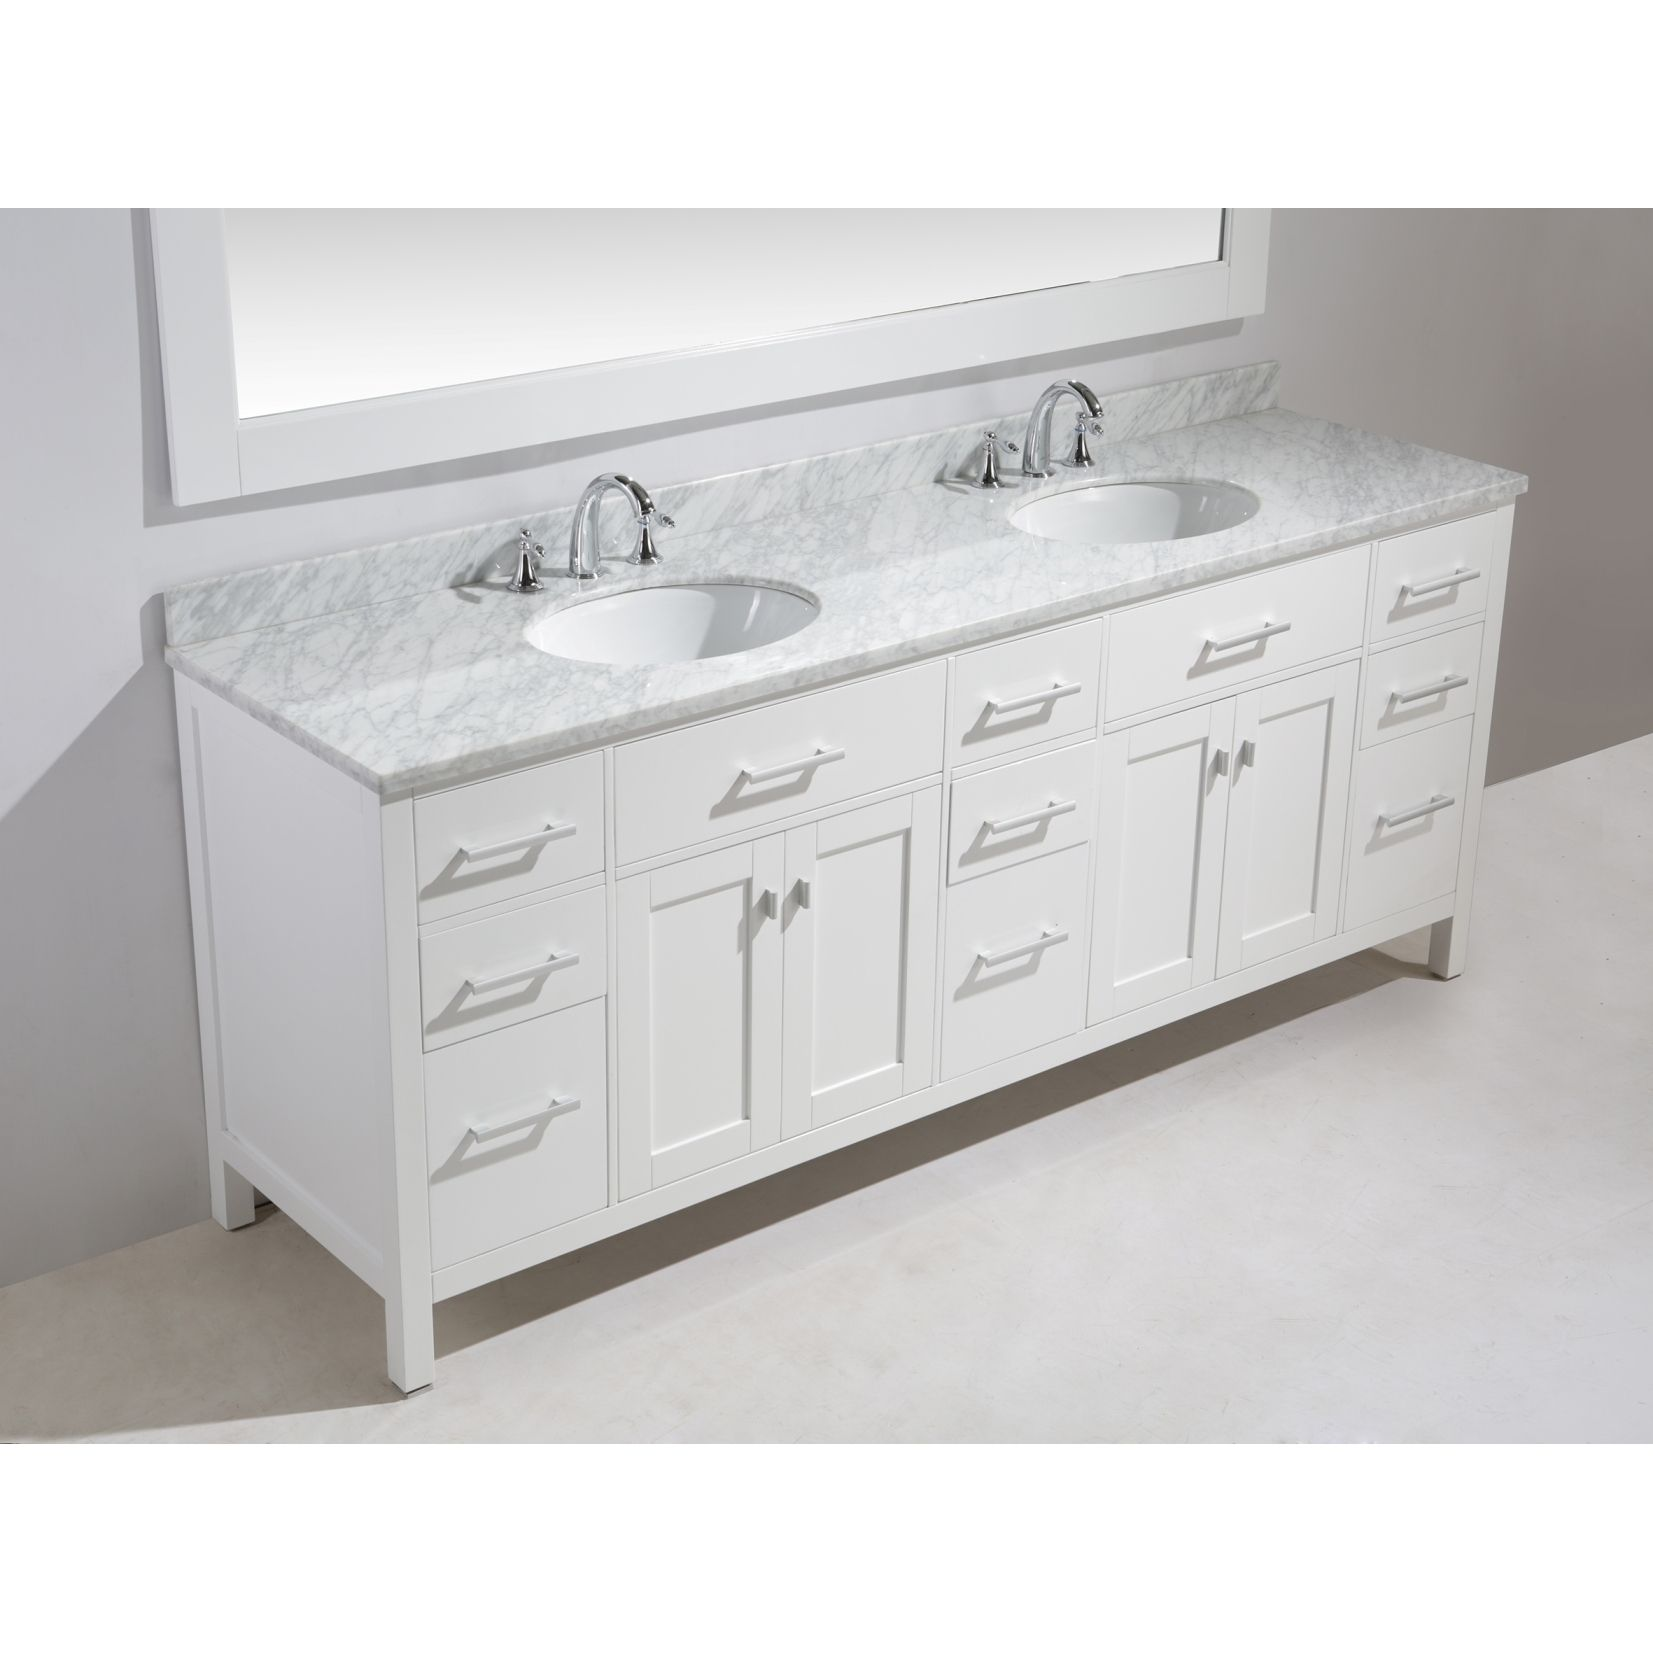 Design Element London 84 Inch Double Sink Vanity Set In White Finish |  Overstock.